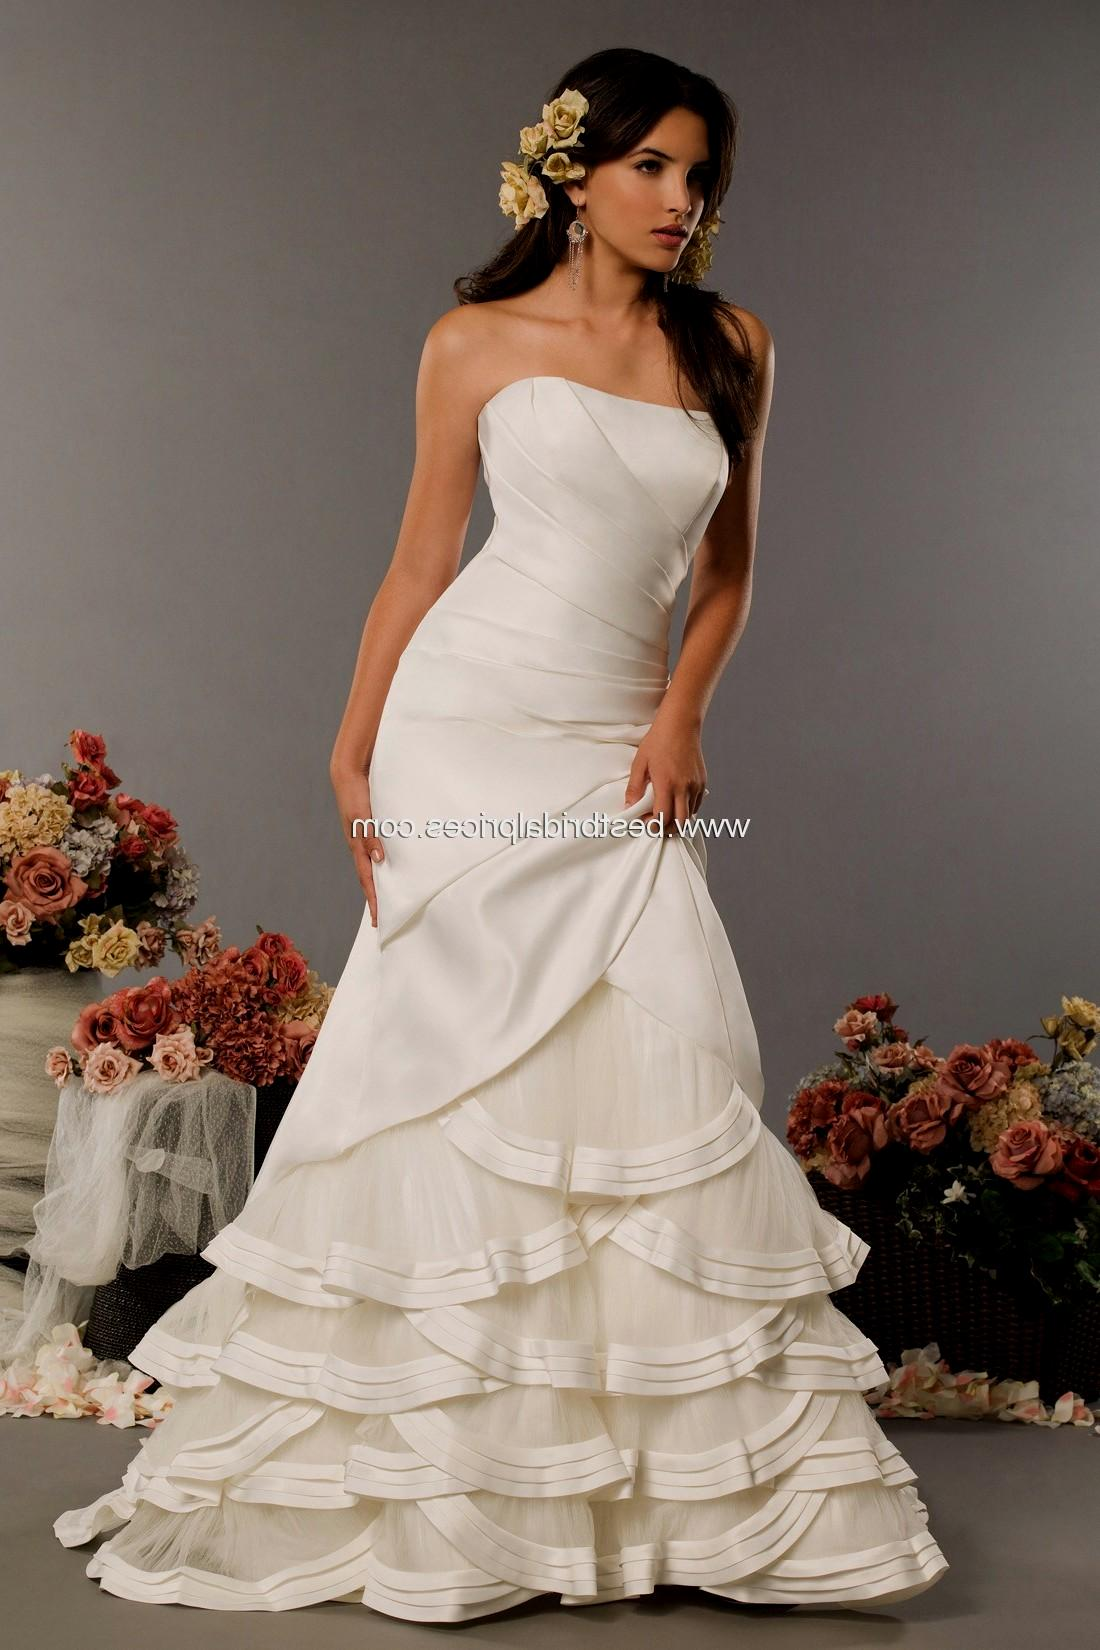 wedding dresses mexican style photo - 1